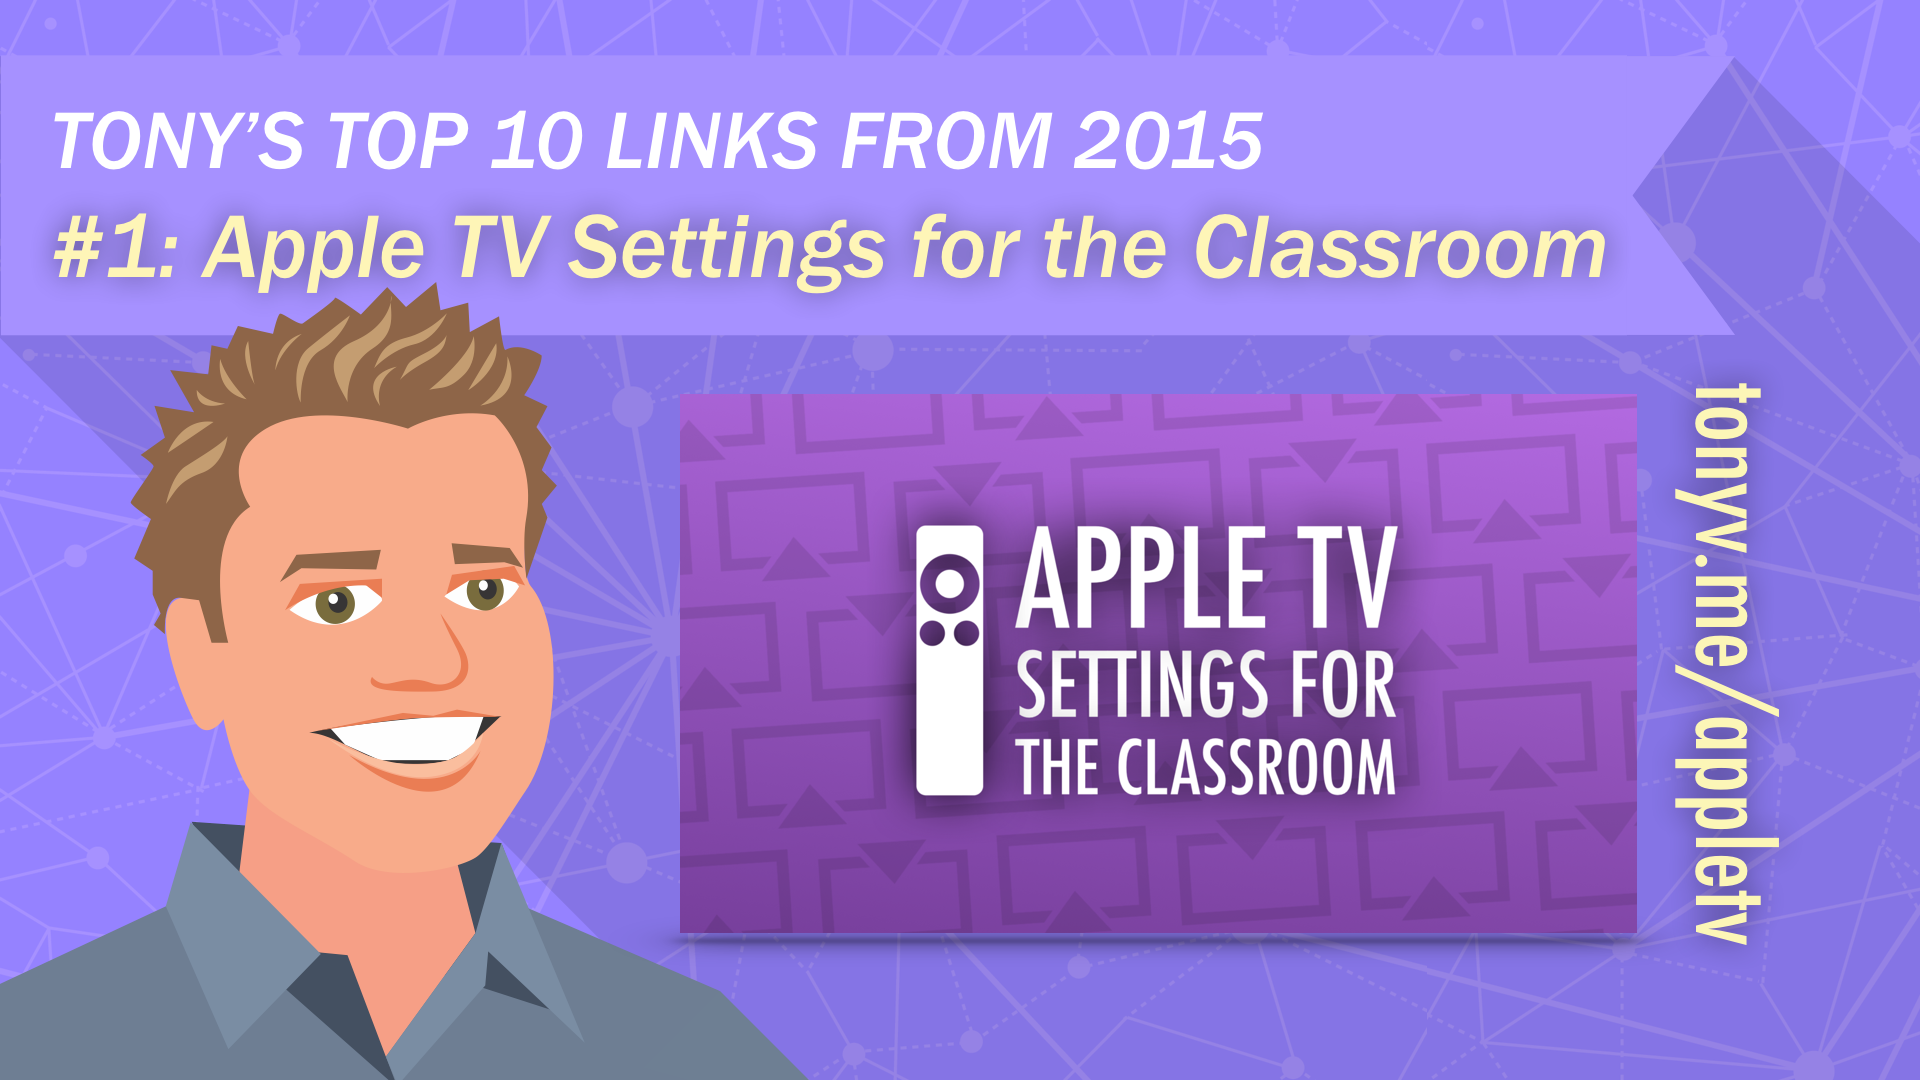 #1: Apple TV Settings for the Classroom